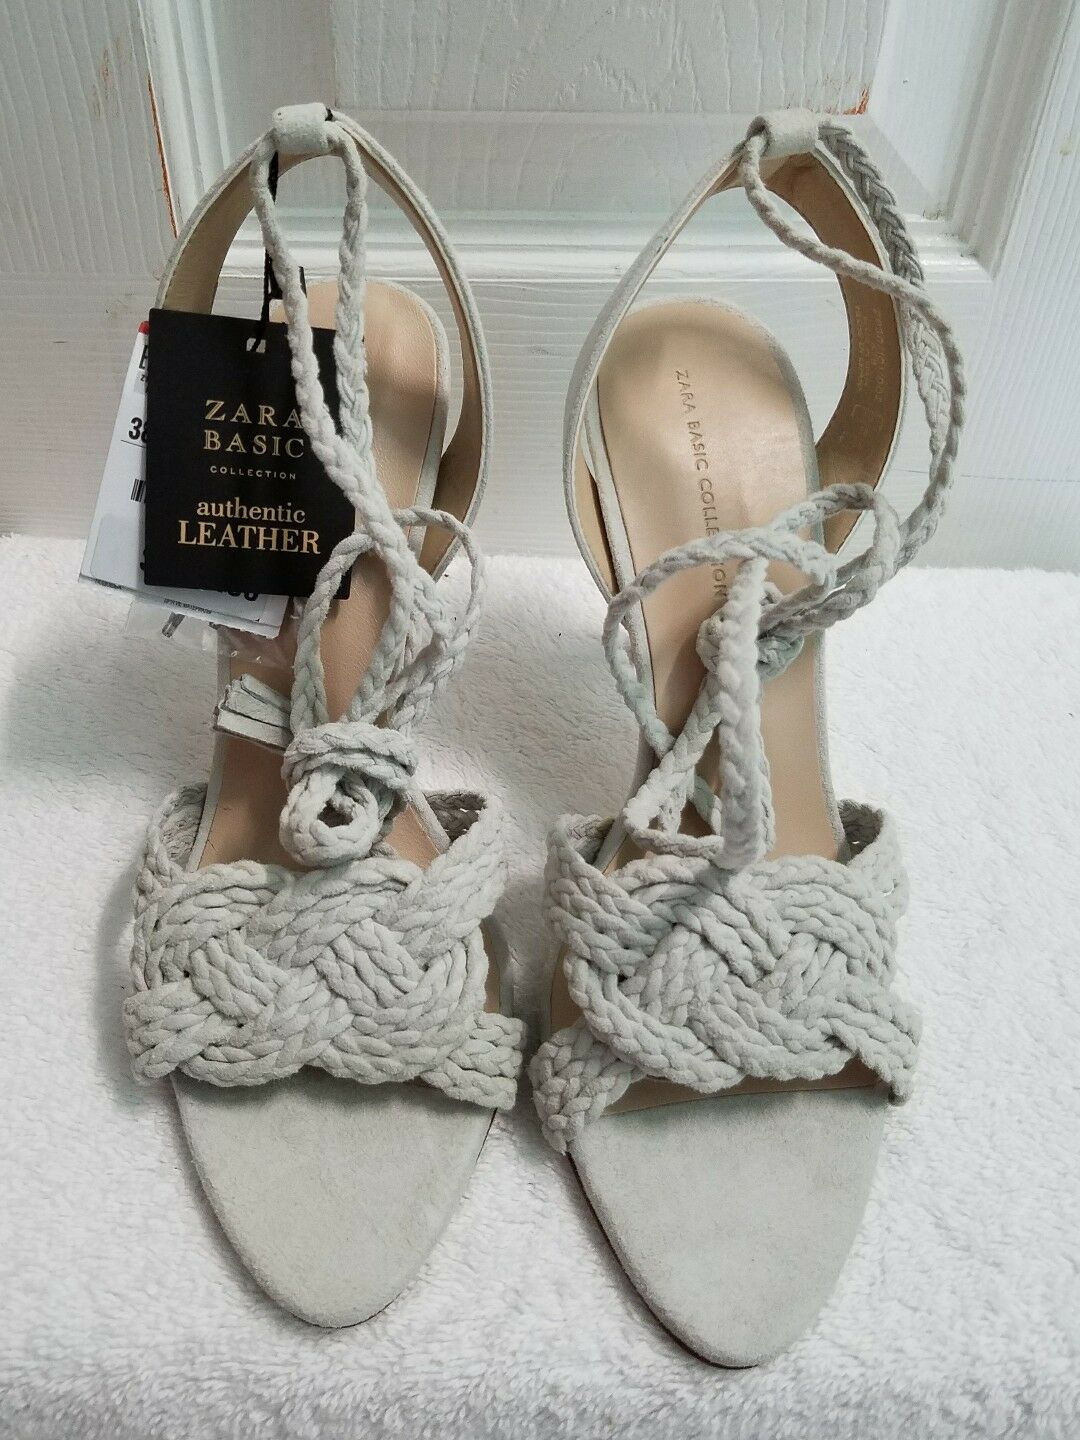 ZARA LEATHER LACE UP SANDALS EUR 37-39 US 6.5-39 REF. 2830 001 NWT